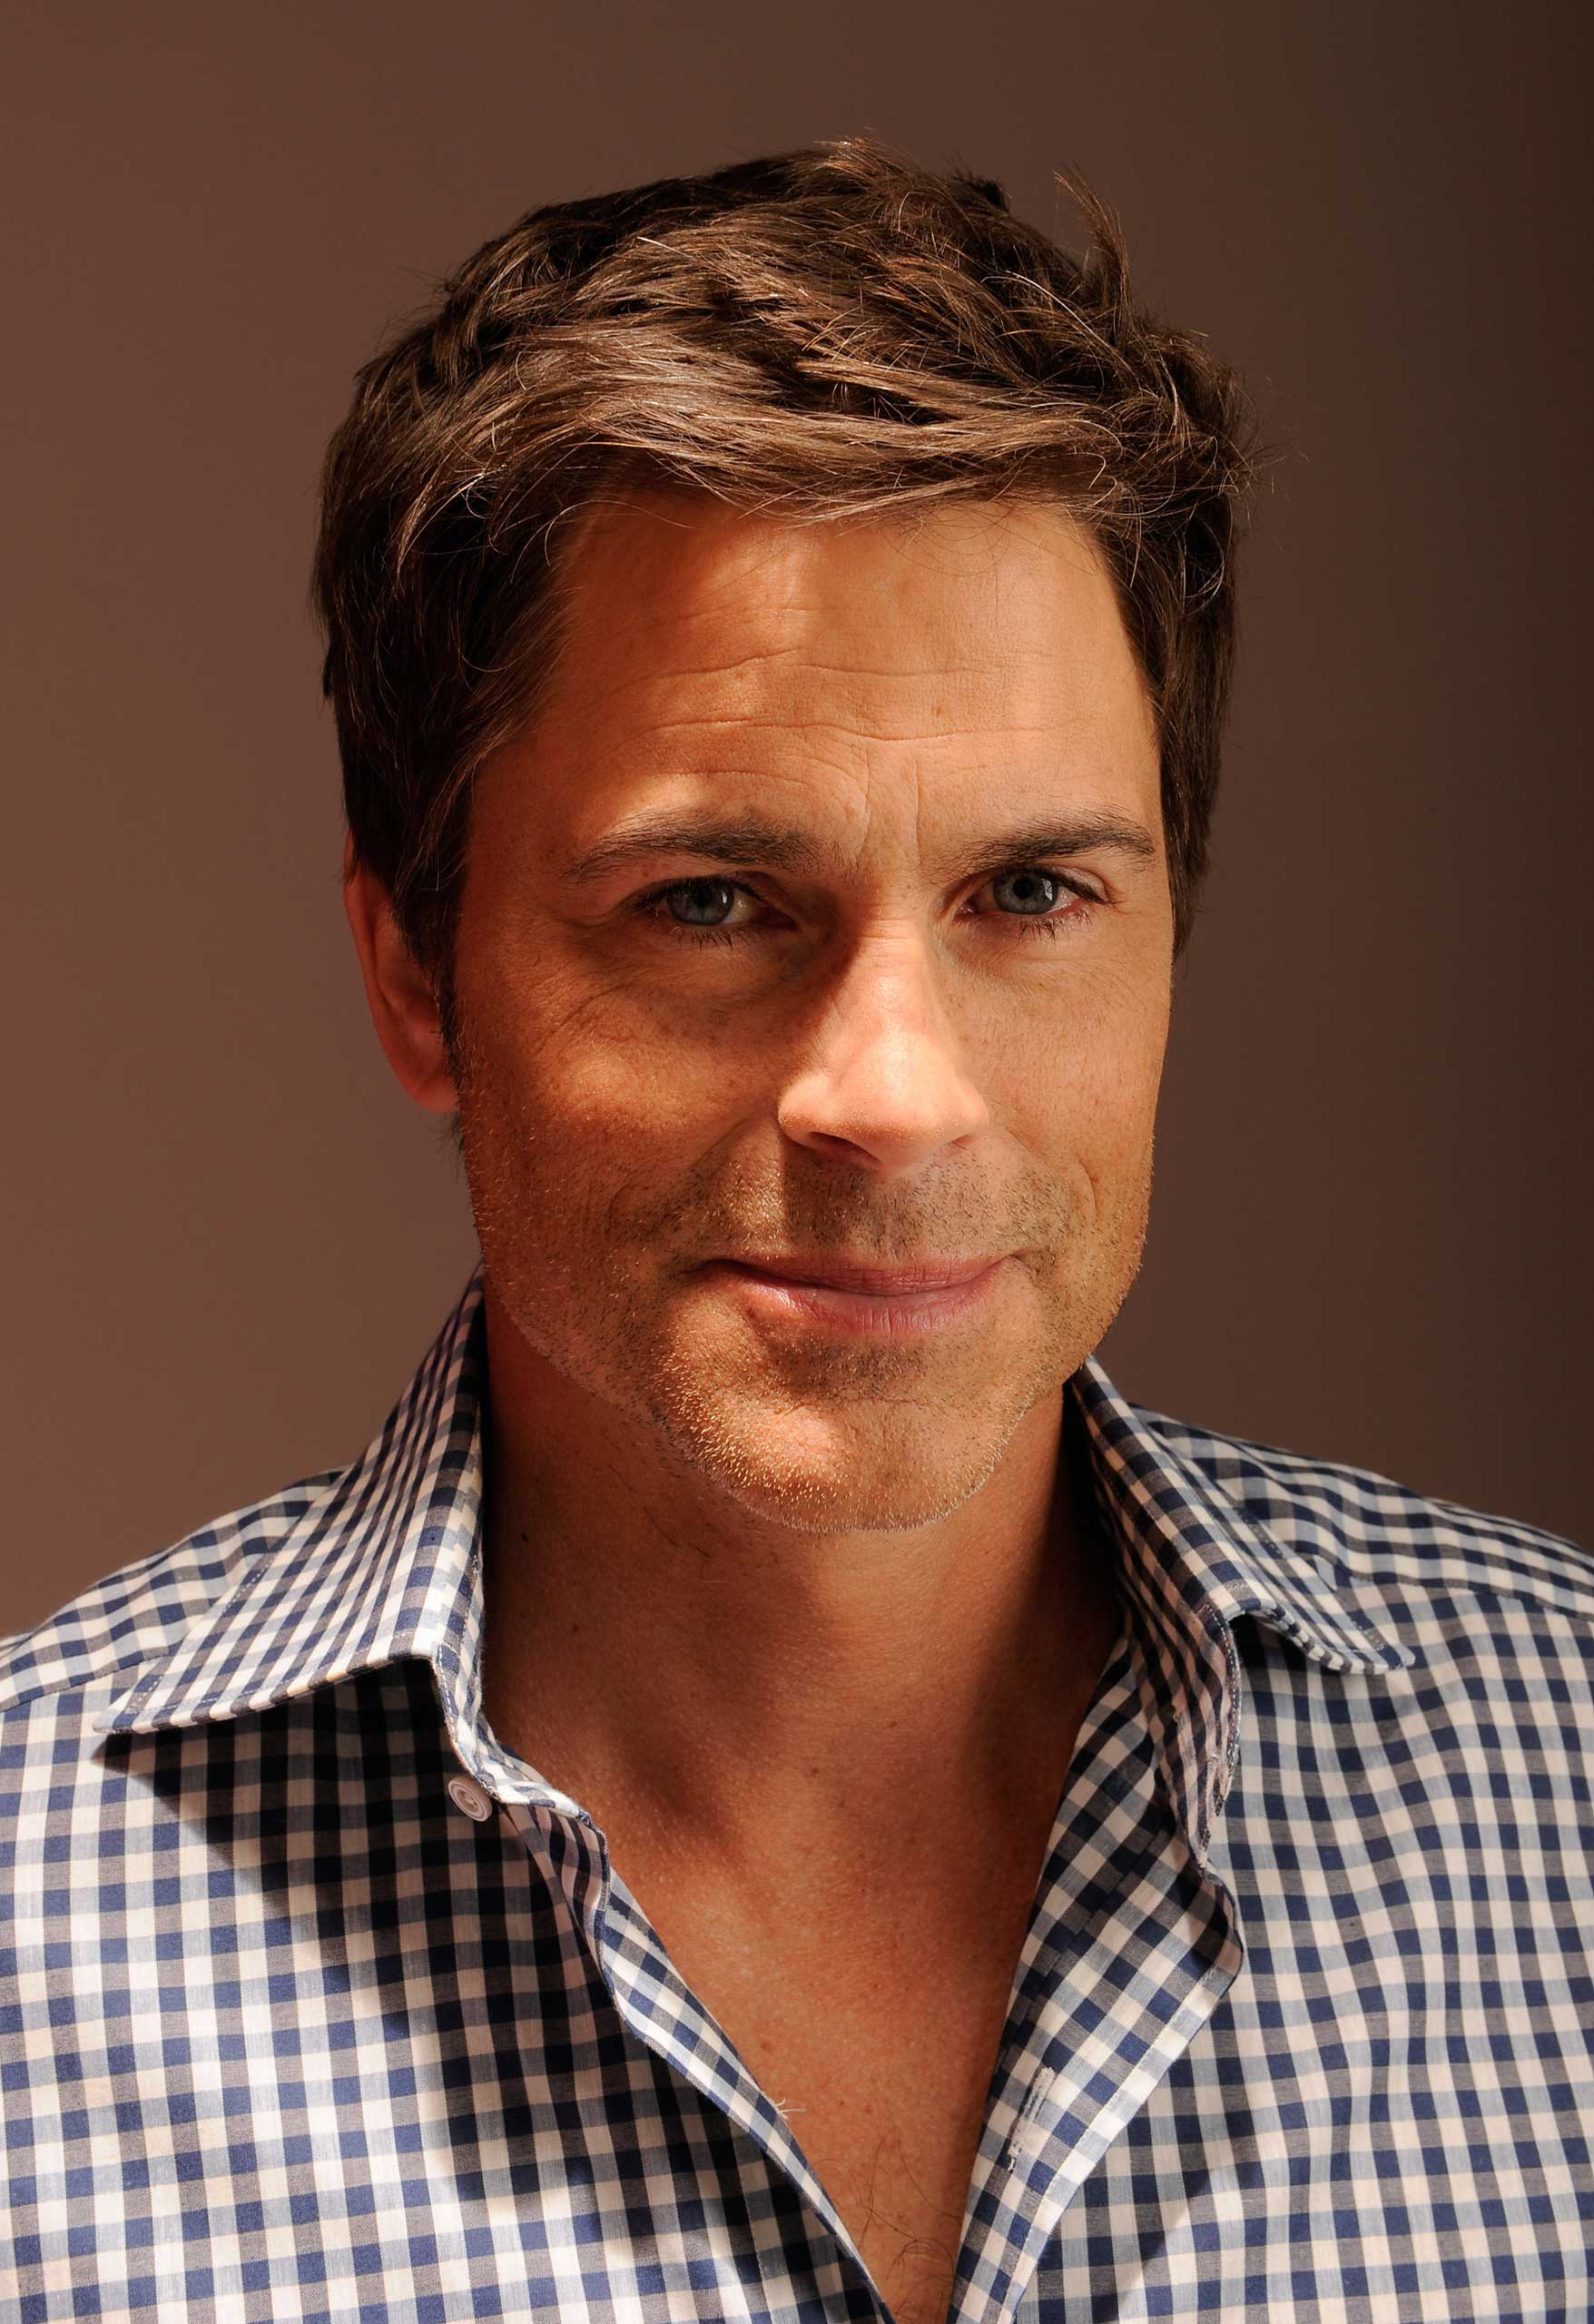 Actor Rob Lowe visits the Tribeca Film Festival 2012 portrait studio on April 25, 2012 in New York City.